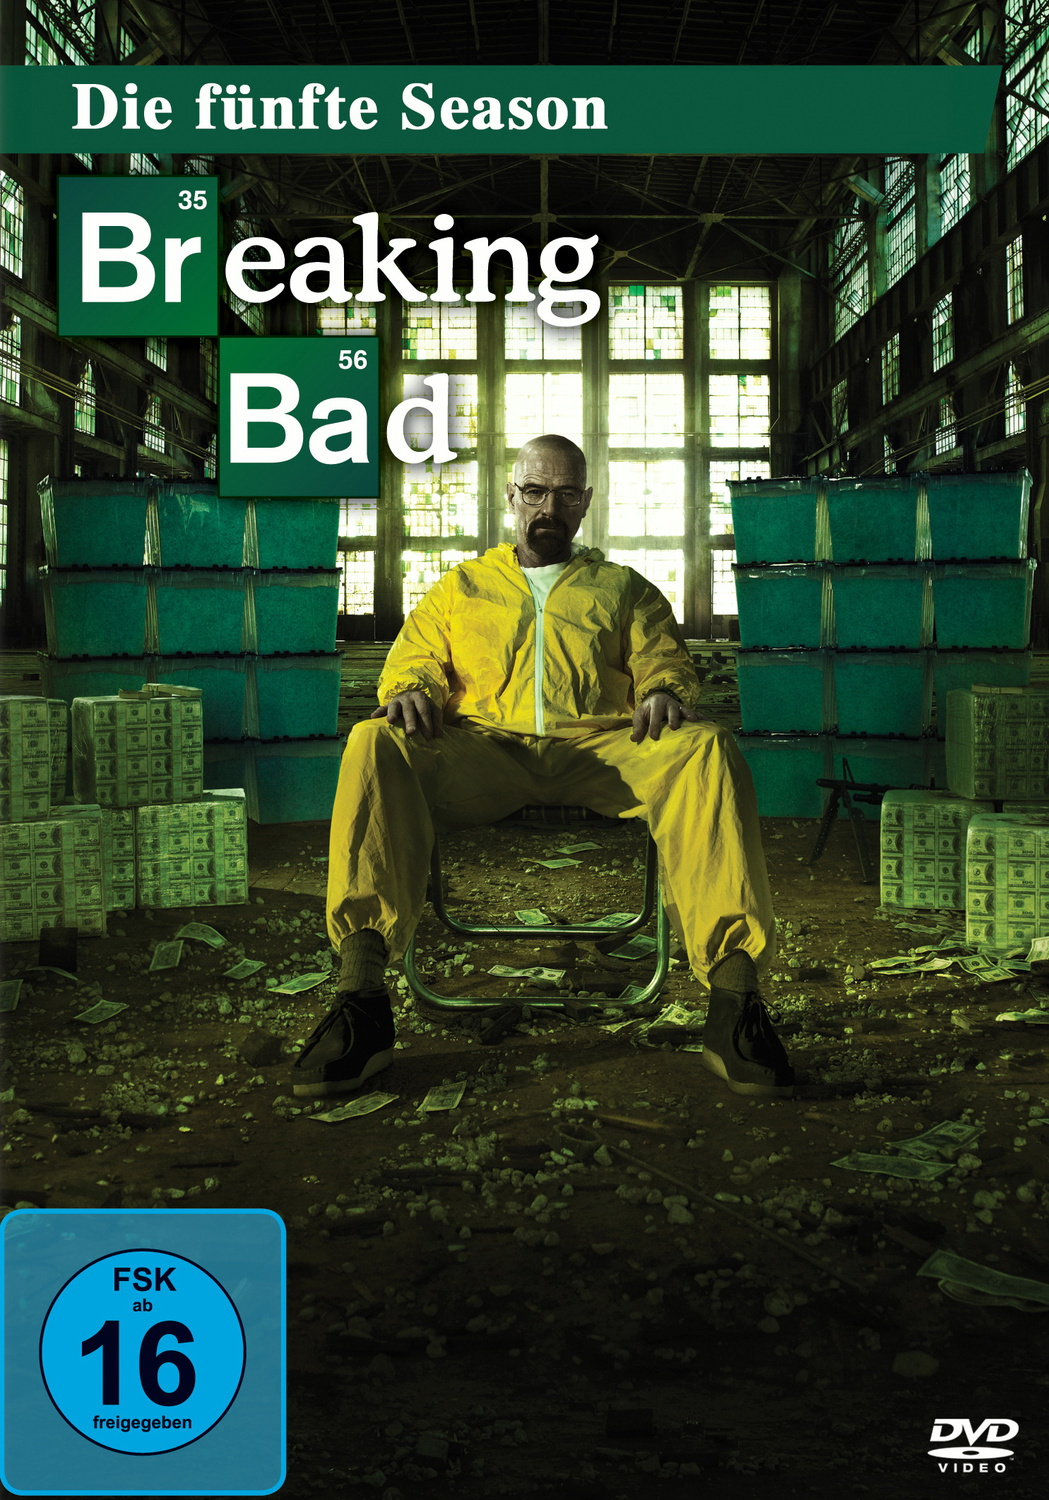 Breaking Bad - Die fünfte Season